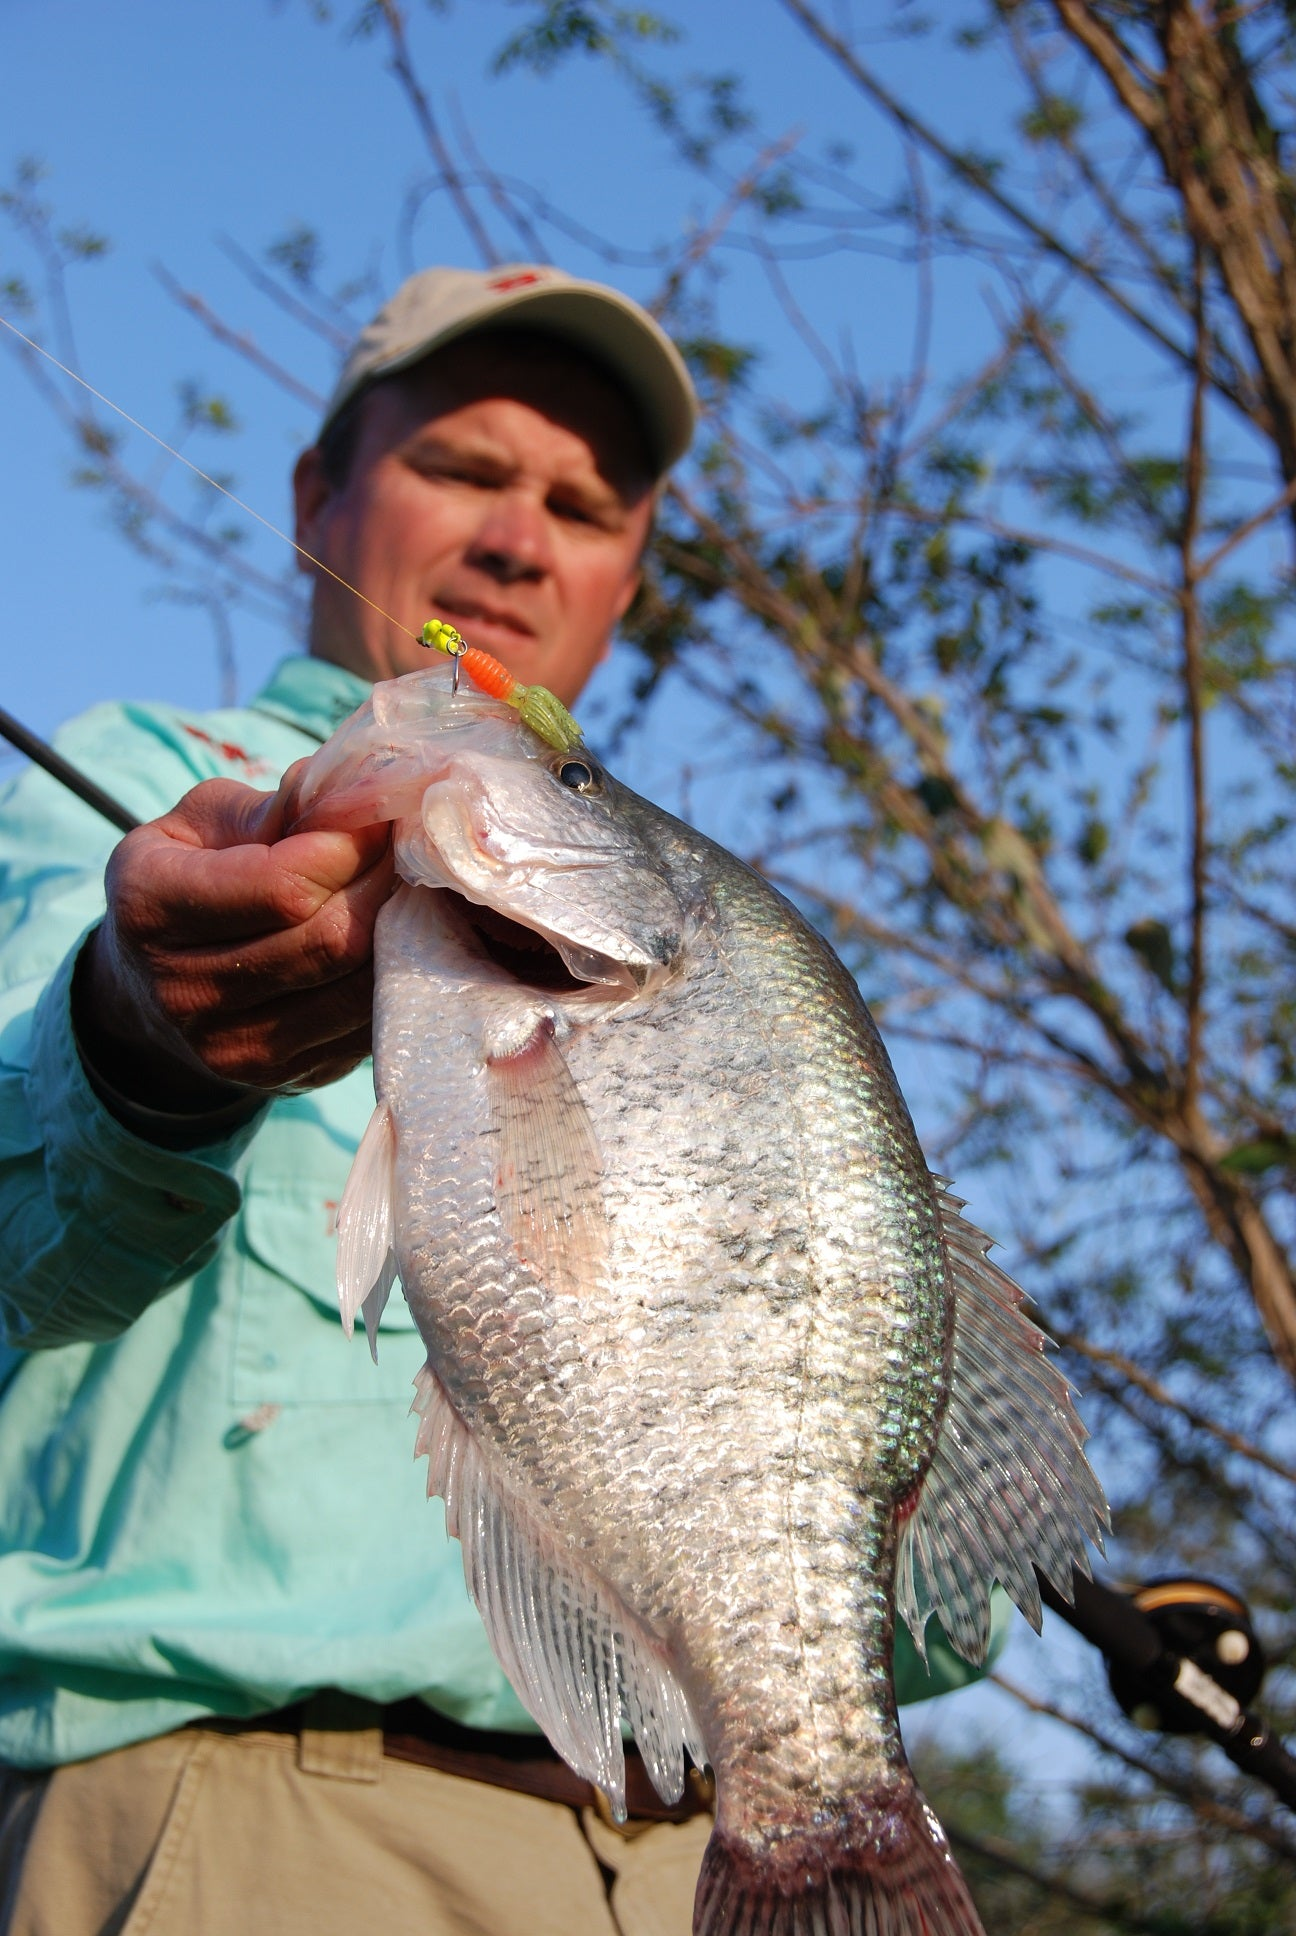 Kent Driscoll On Using the Garmin Panoptix Live Scope to Catch Crappie - Part 2